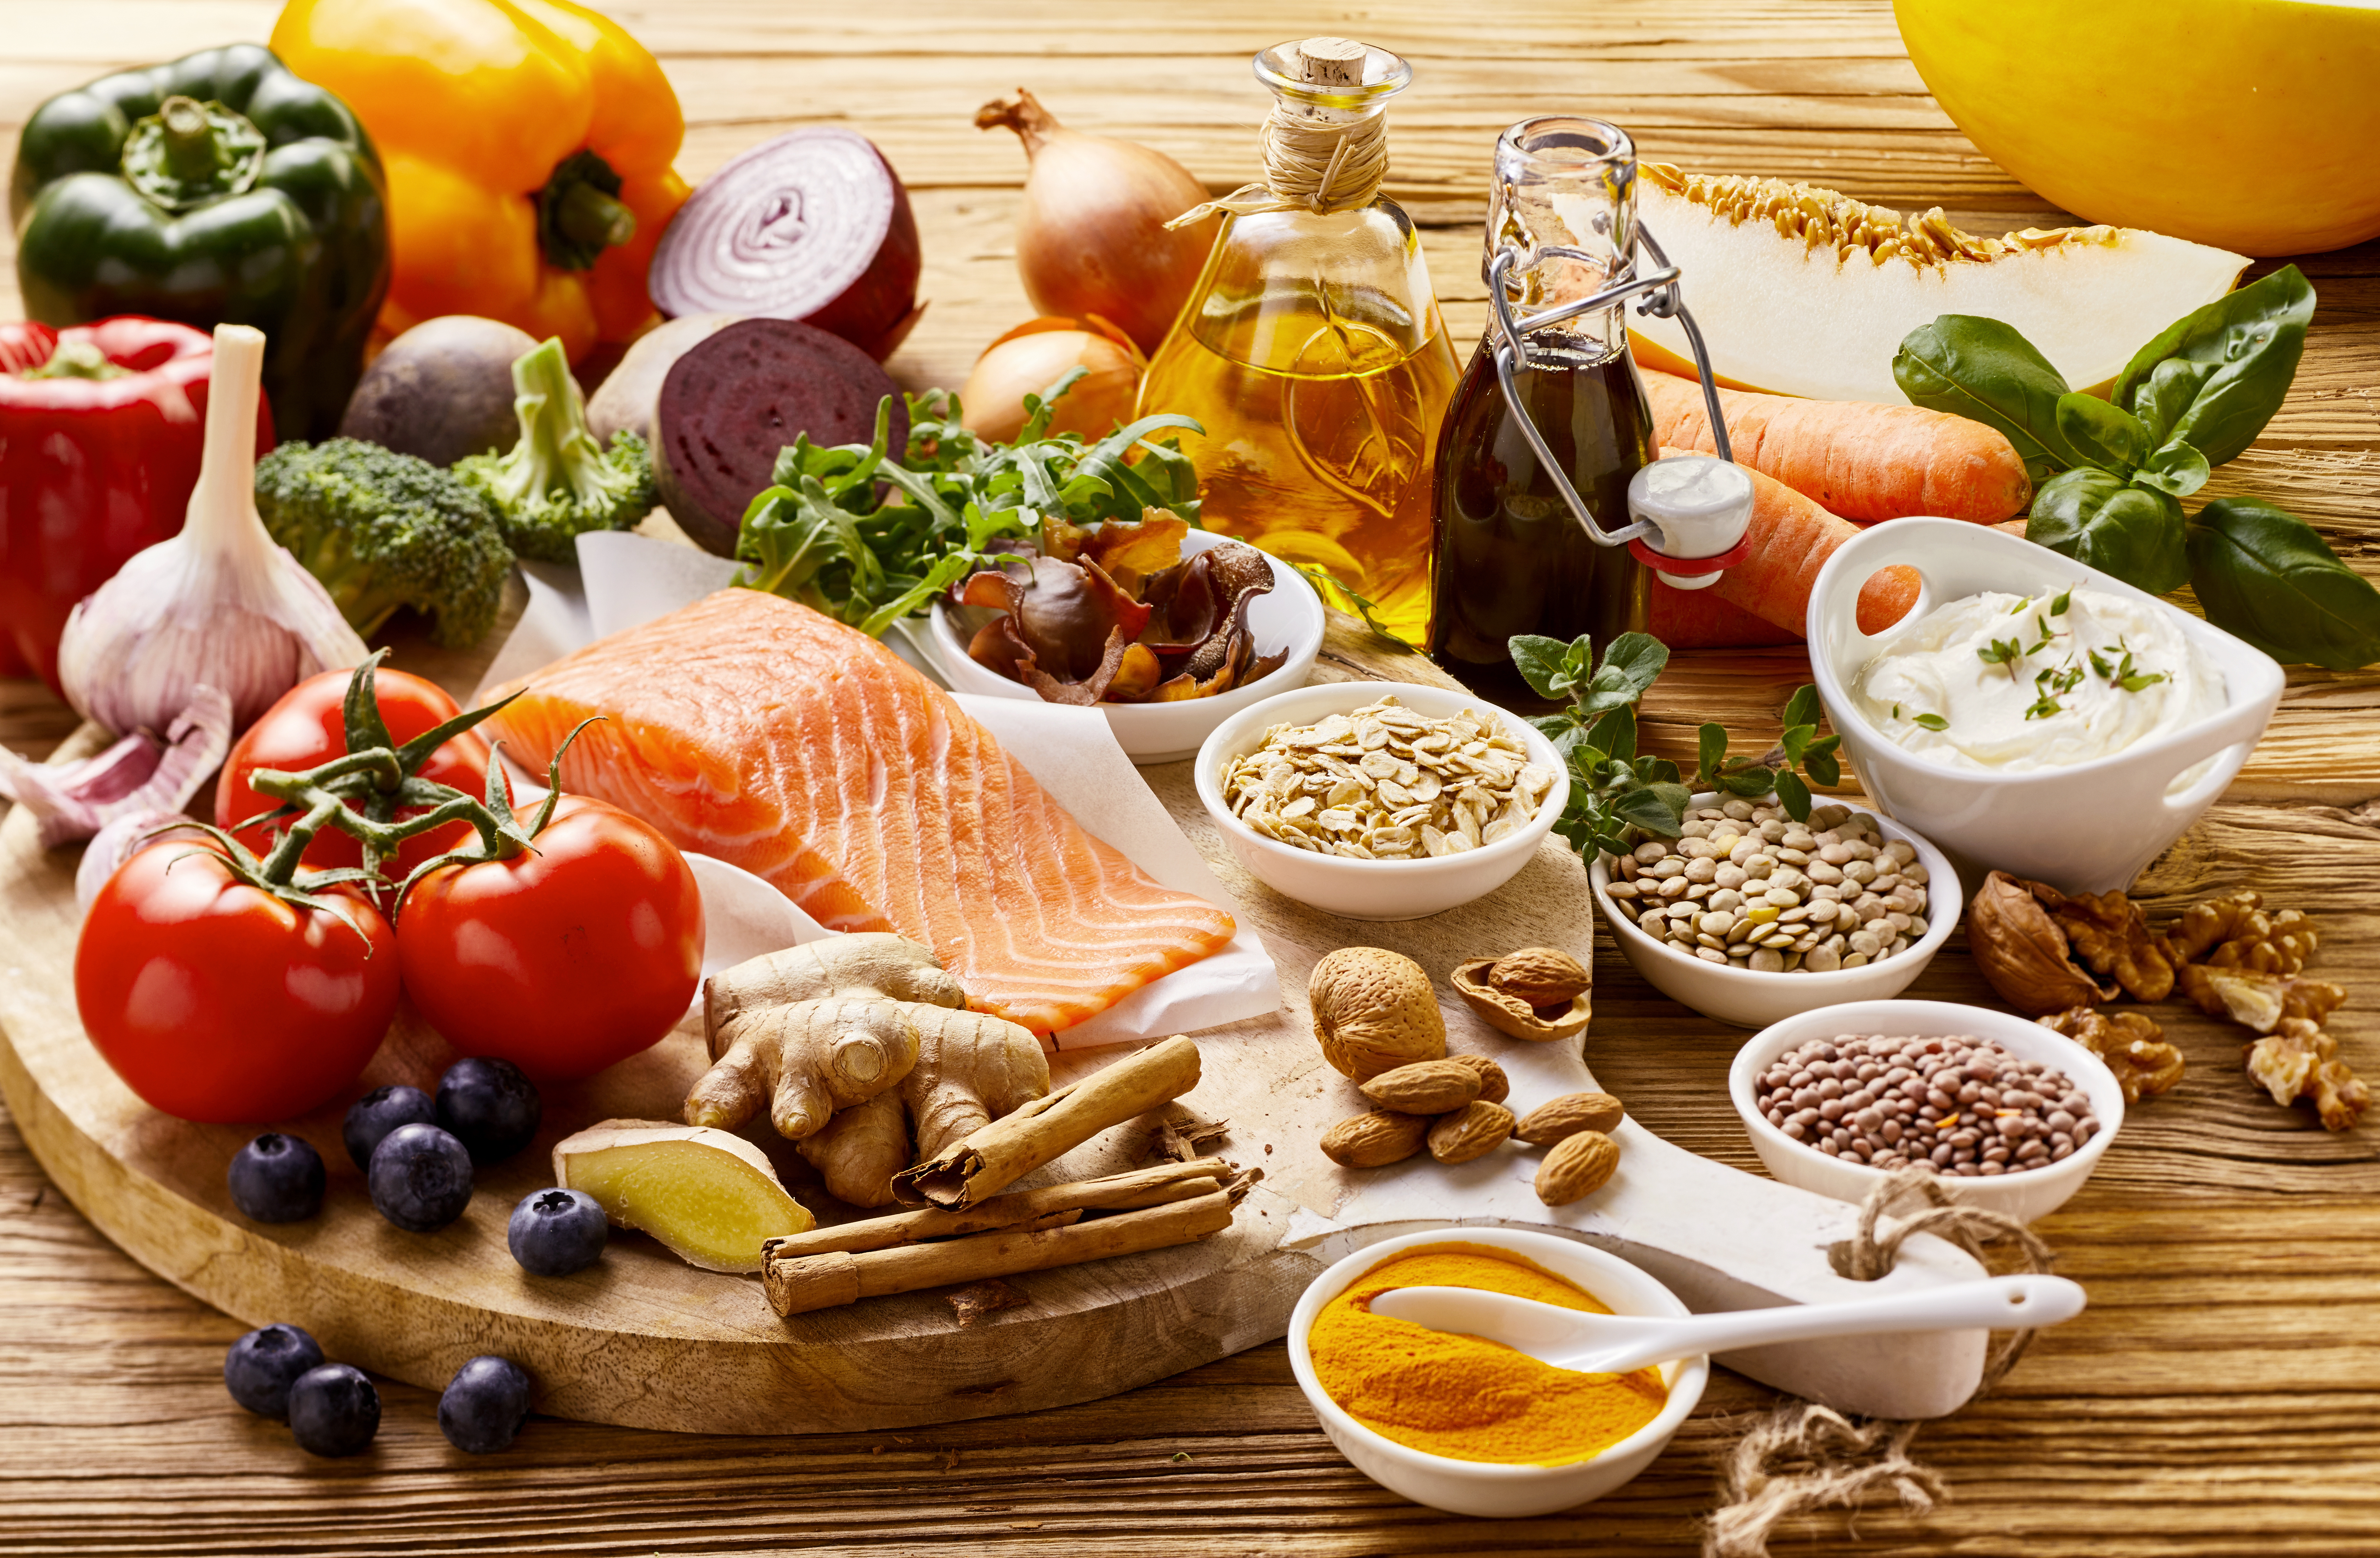 The Mediterranean diet, with its focus on seafood and olive oil as well as a wide range of fresh vegetables, fruit and leafy greens, might help improve psoriasis symptoms.